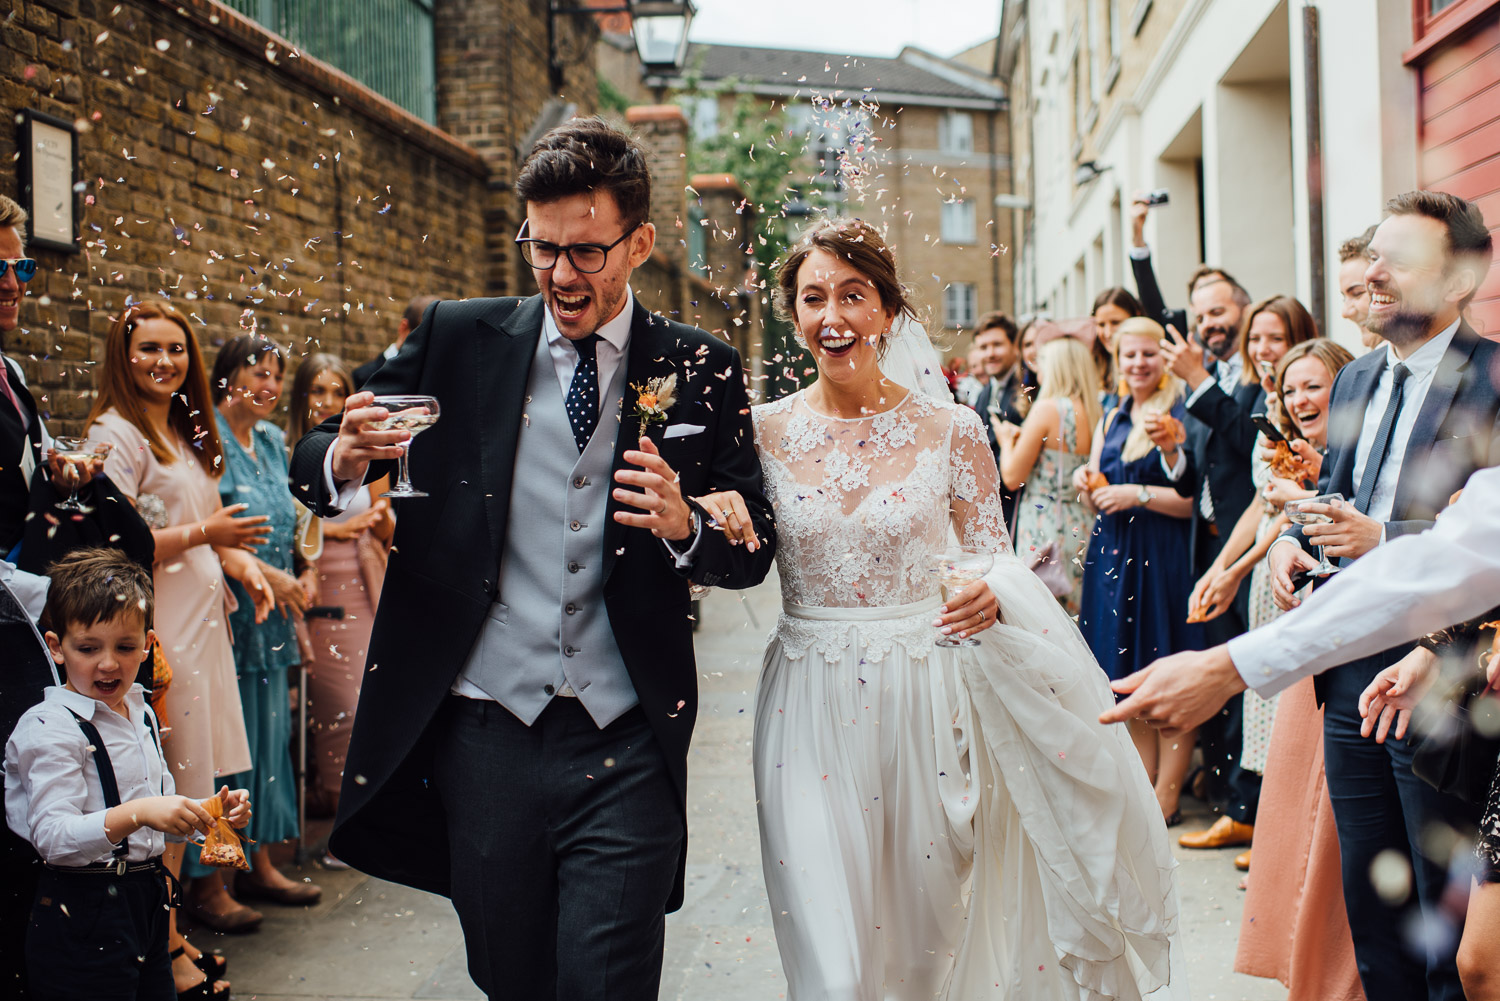 Wiltons music hall confetti in Wilton's Music Hall Wedding by london wedding photographer the shannons photography